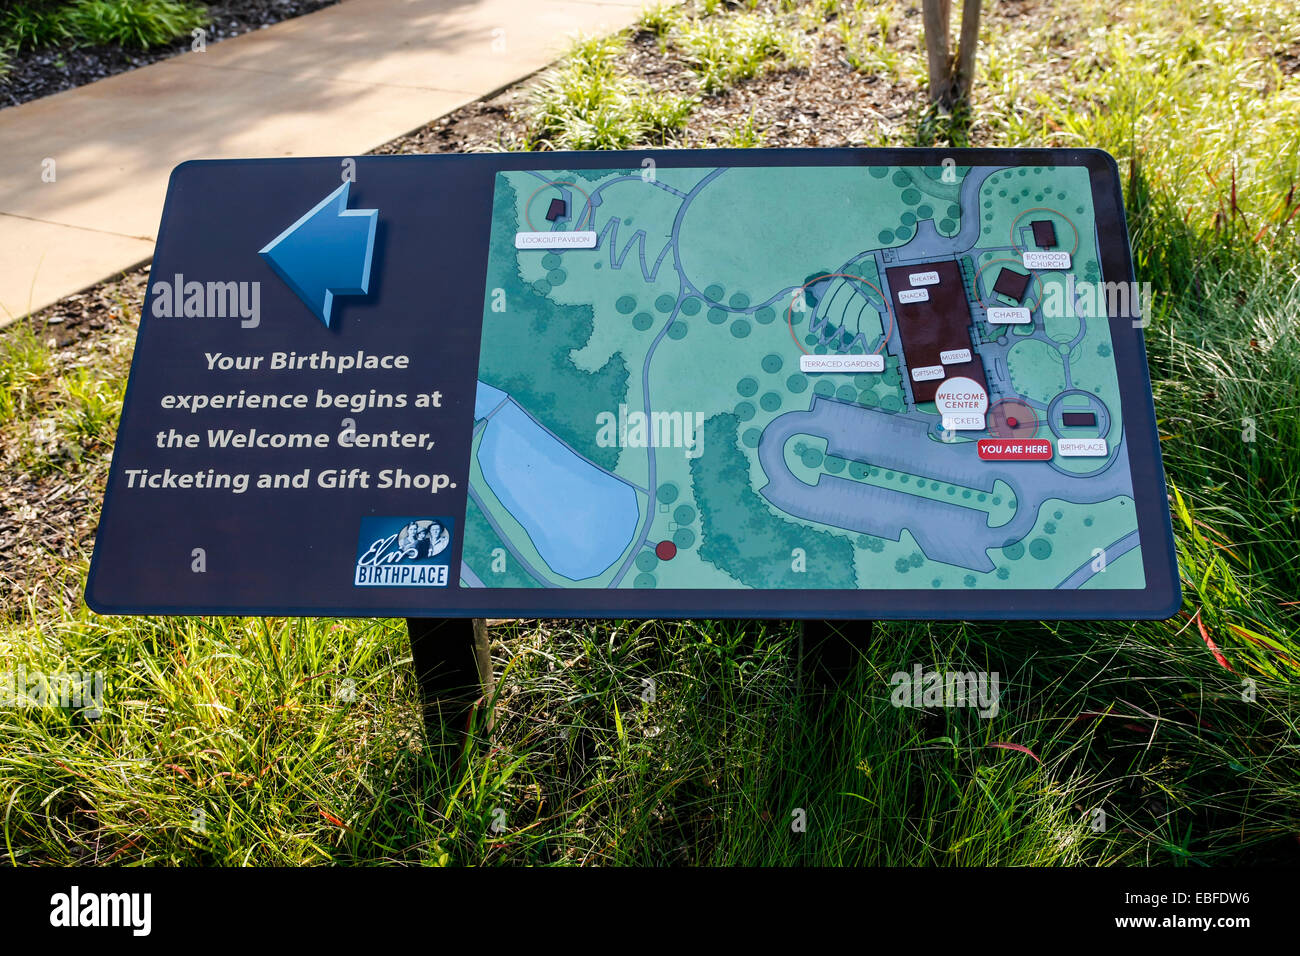 Map of the Elvis Birthplace museum grounds in Tupelo Mississippi - Stock Image